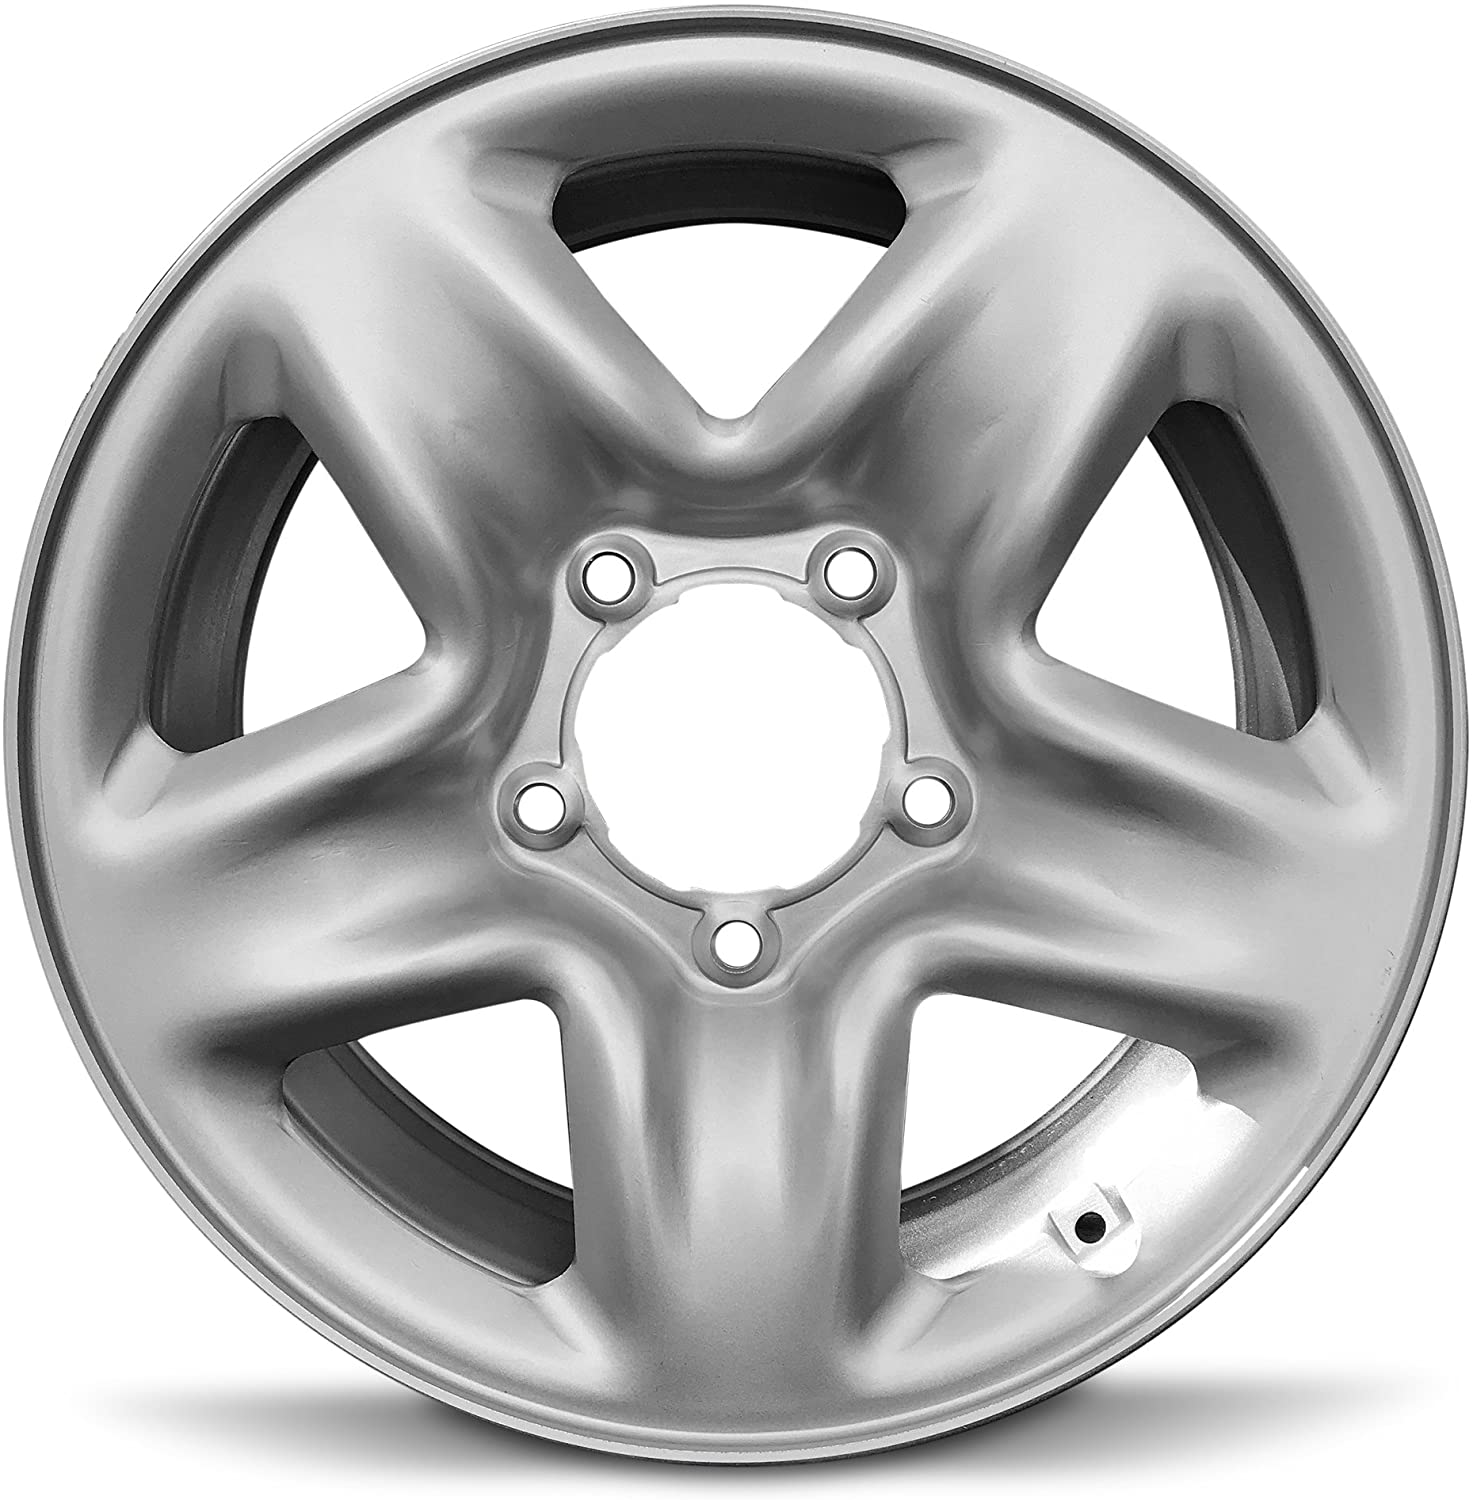 Road Ready Car Wheel For 2007-2020 Toyota Tundra 18 Inch 5 Lug Silver Steel Rim Fits R18 Tire - Exact OEM Replacement - Full-Size Spare